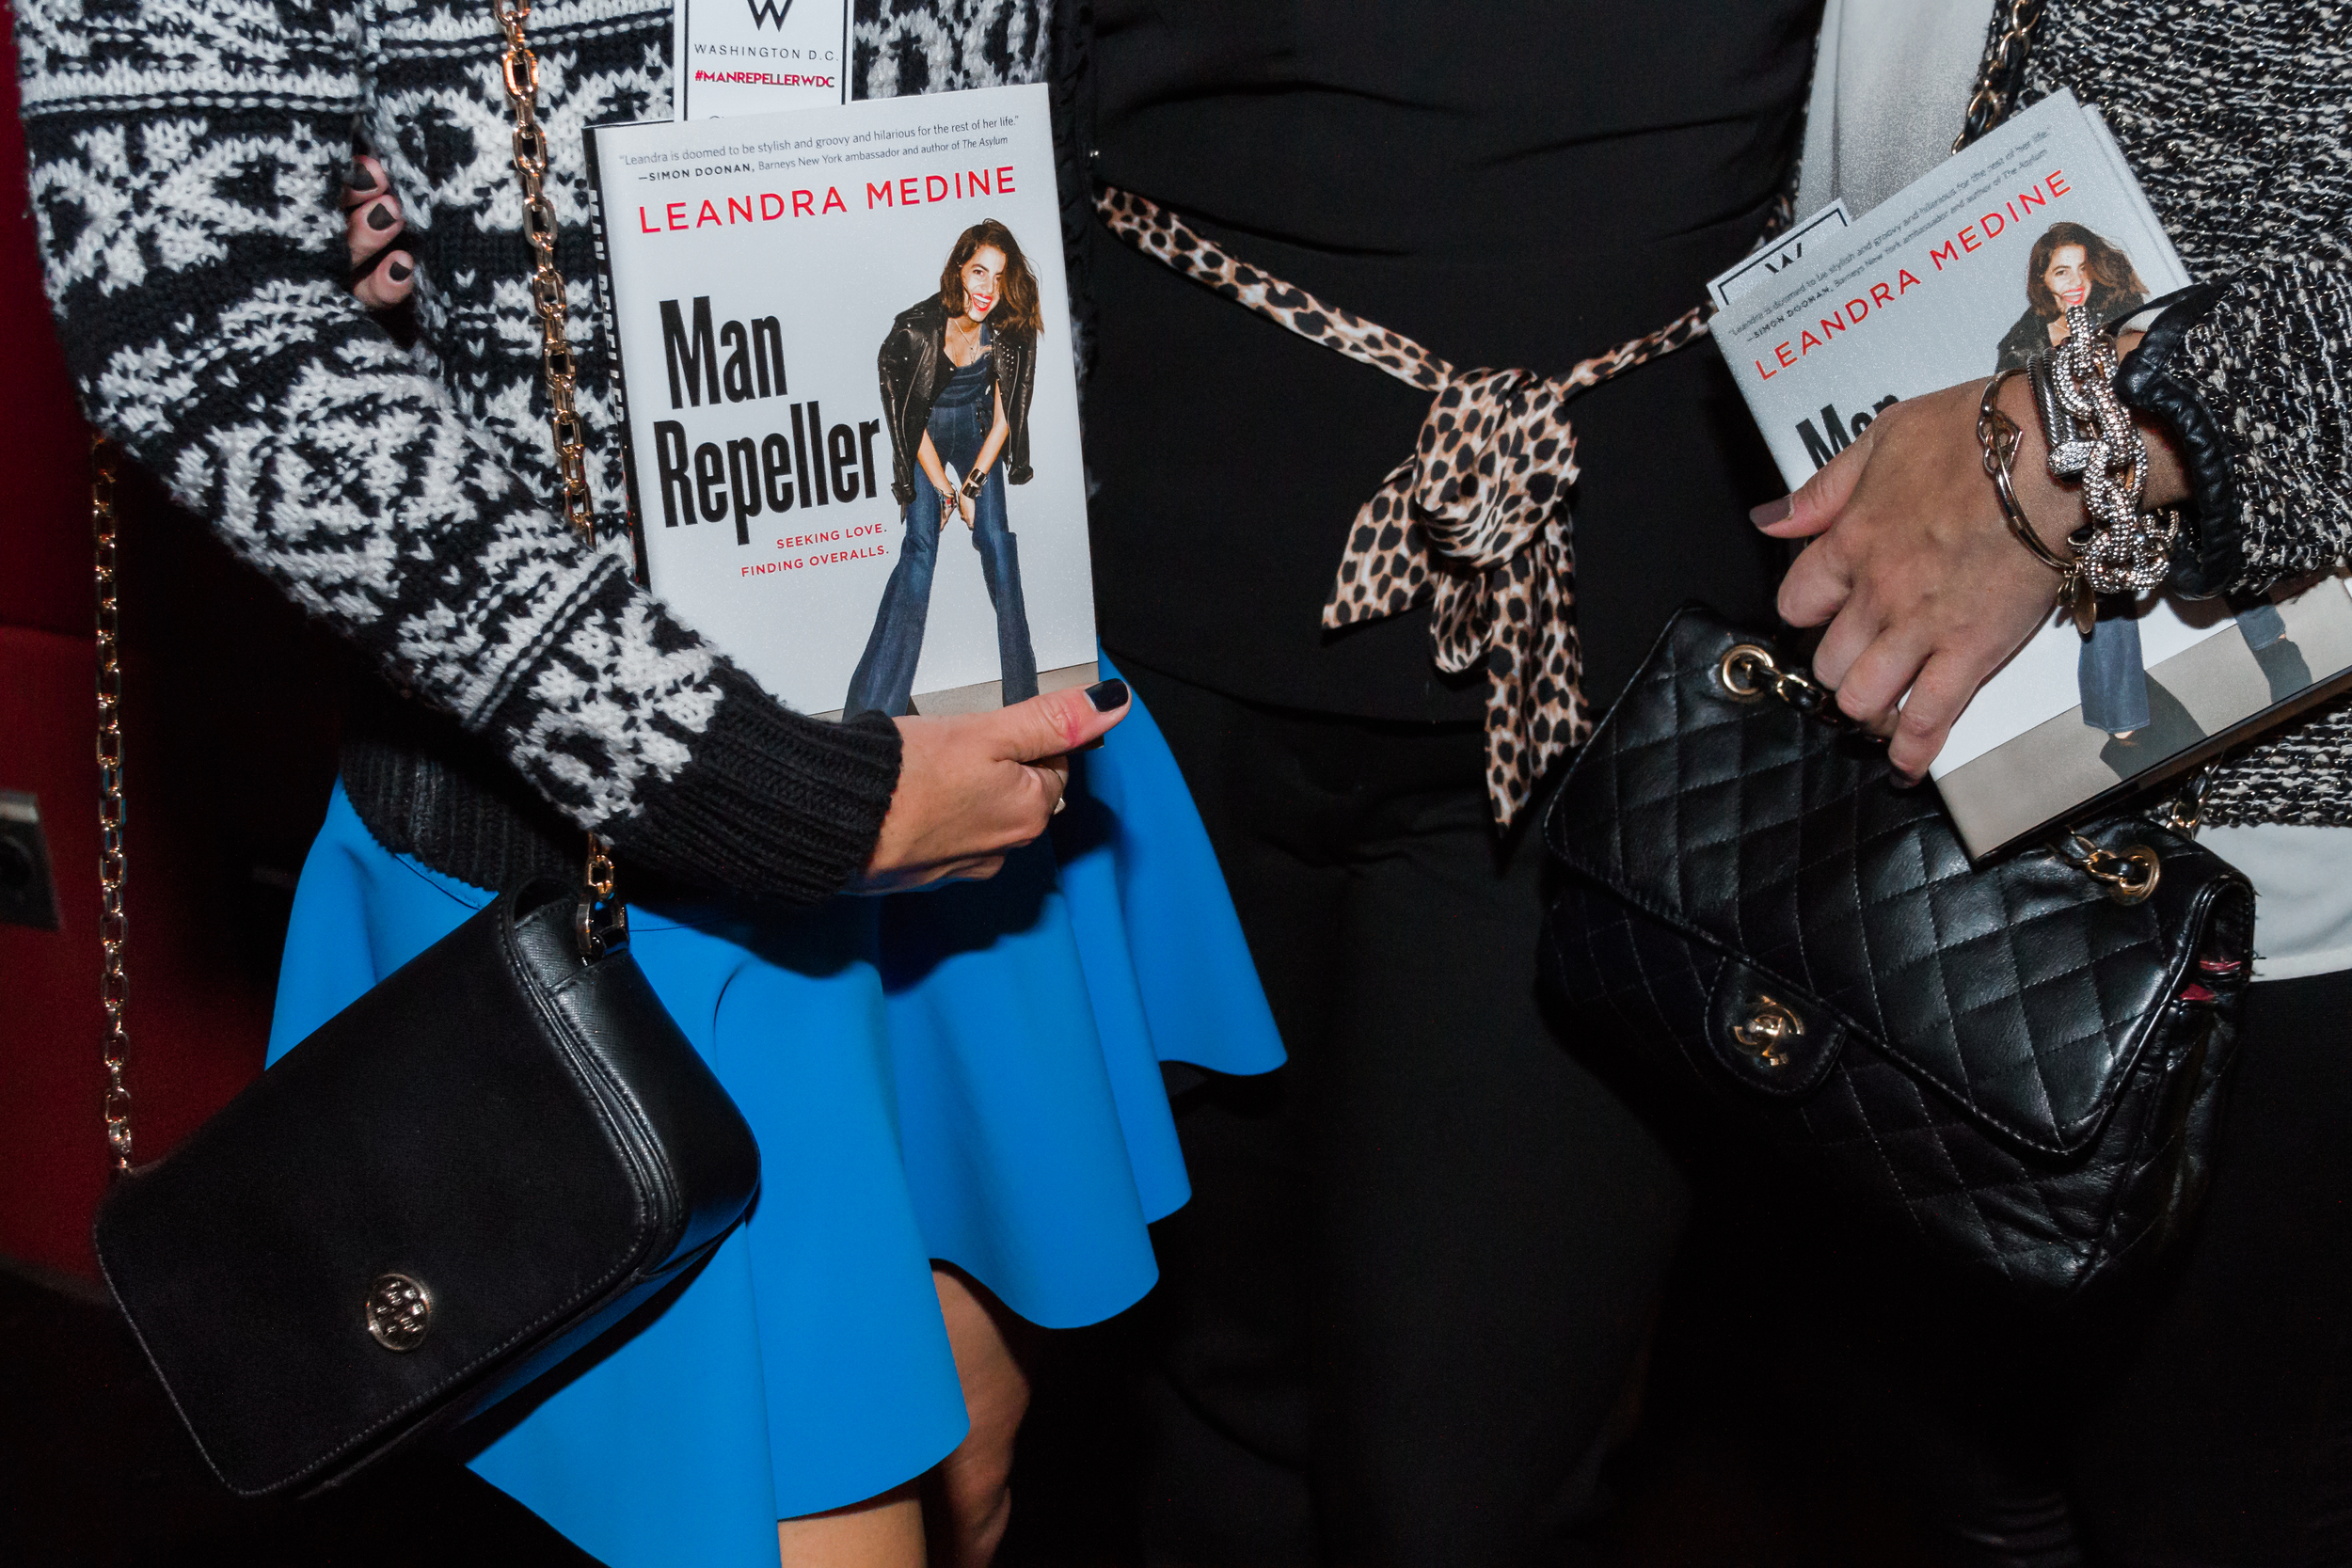 The Man Repeller Book Signing DC-23.jpg